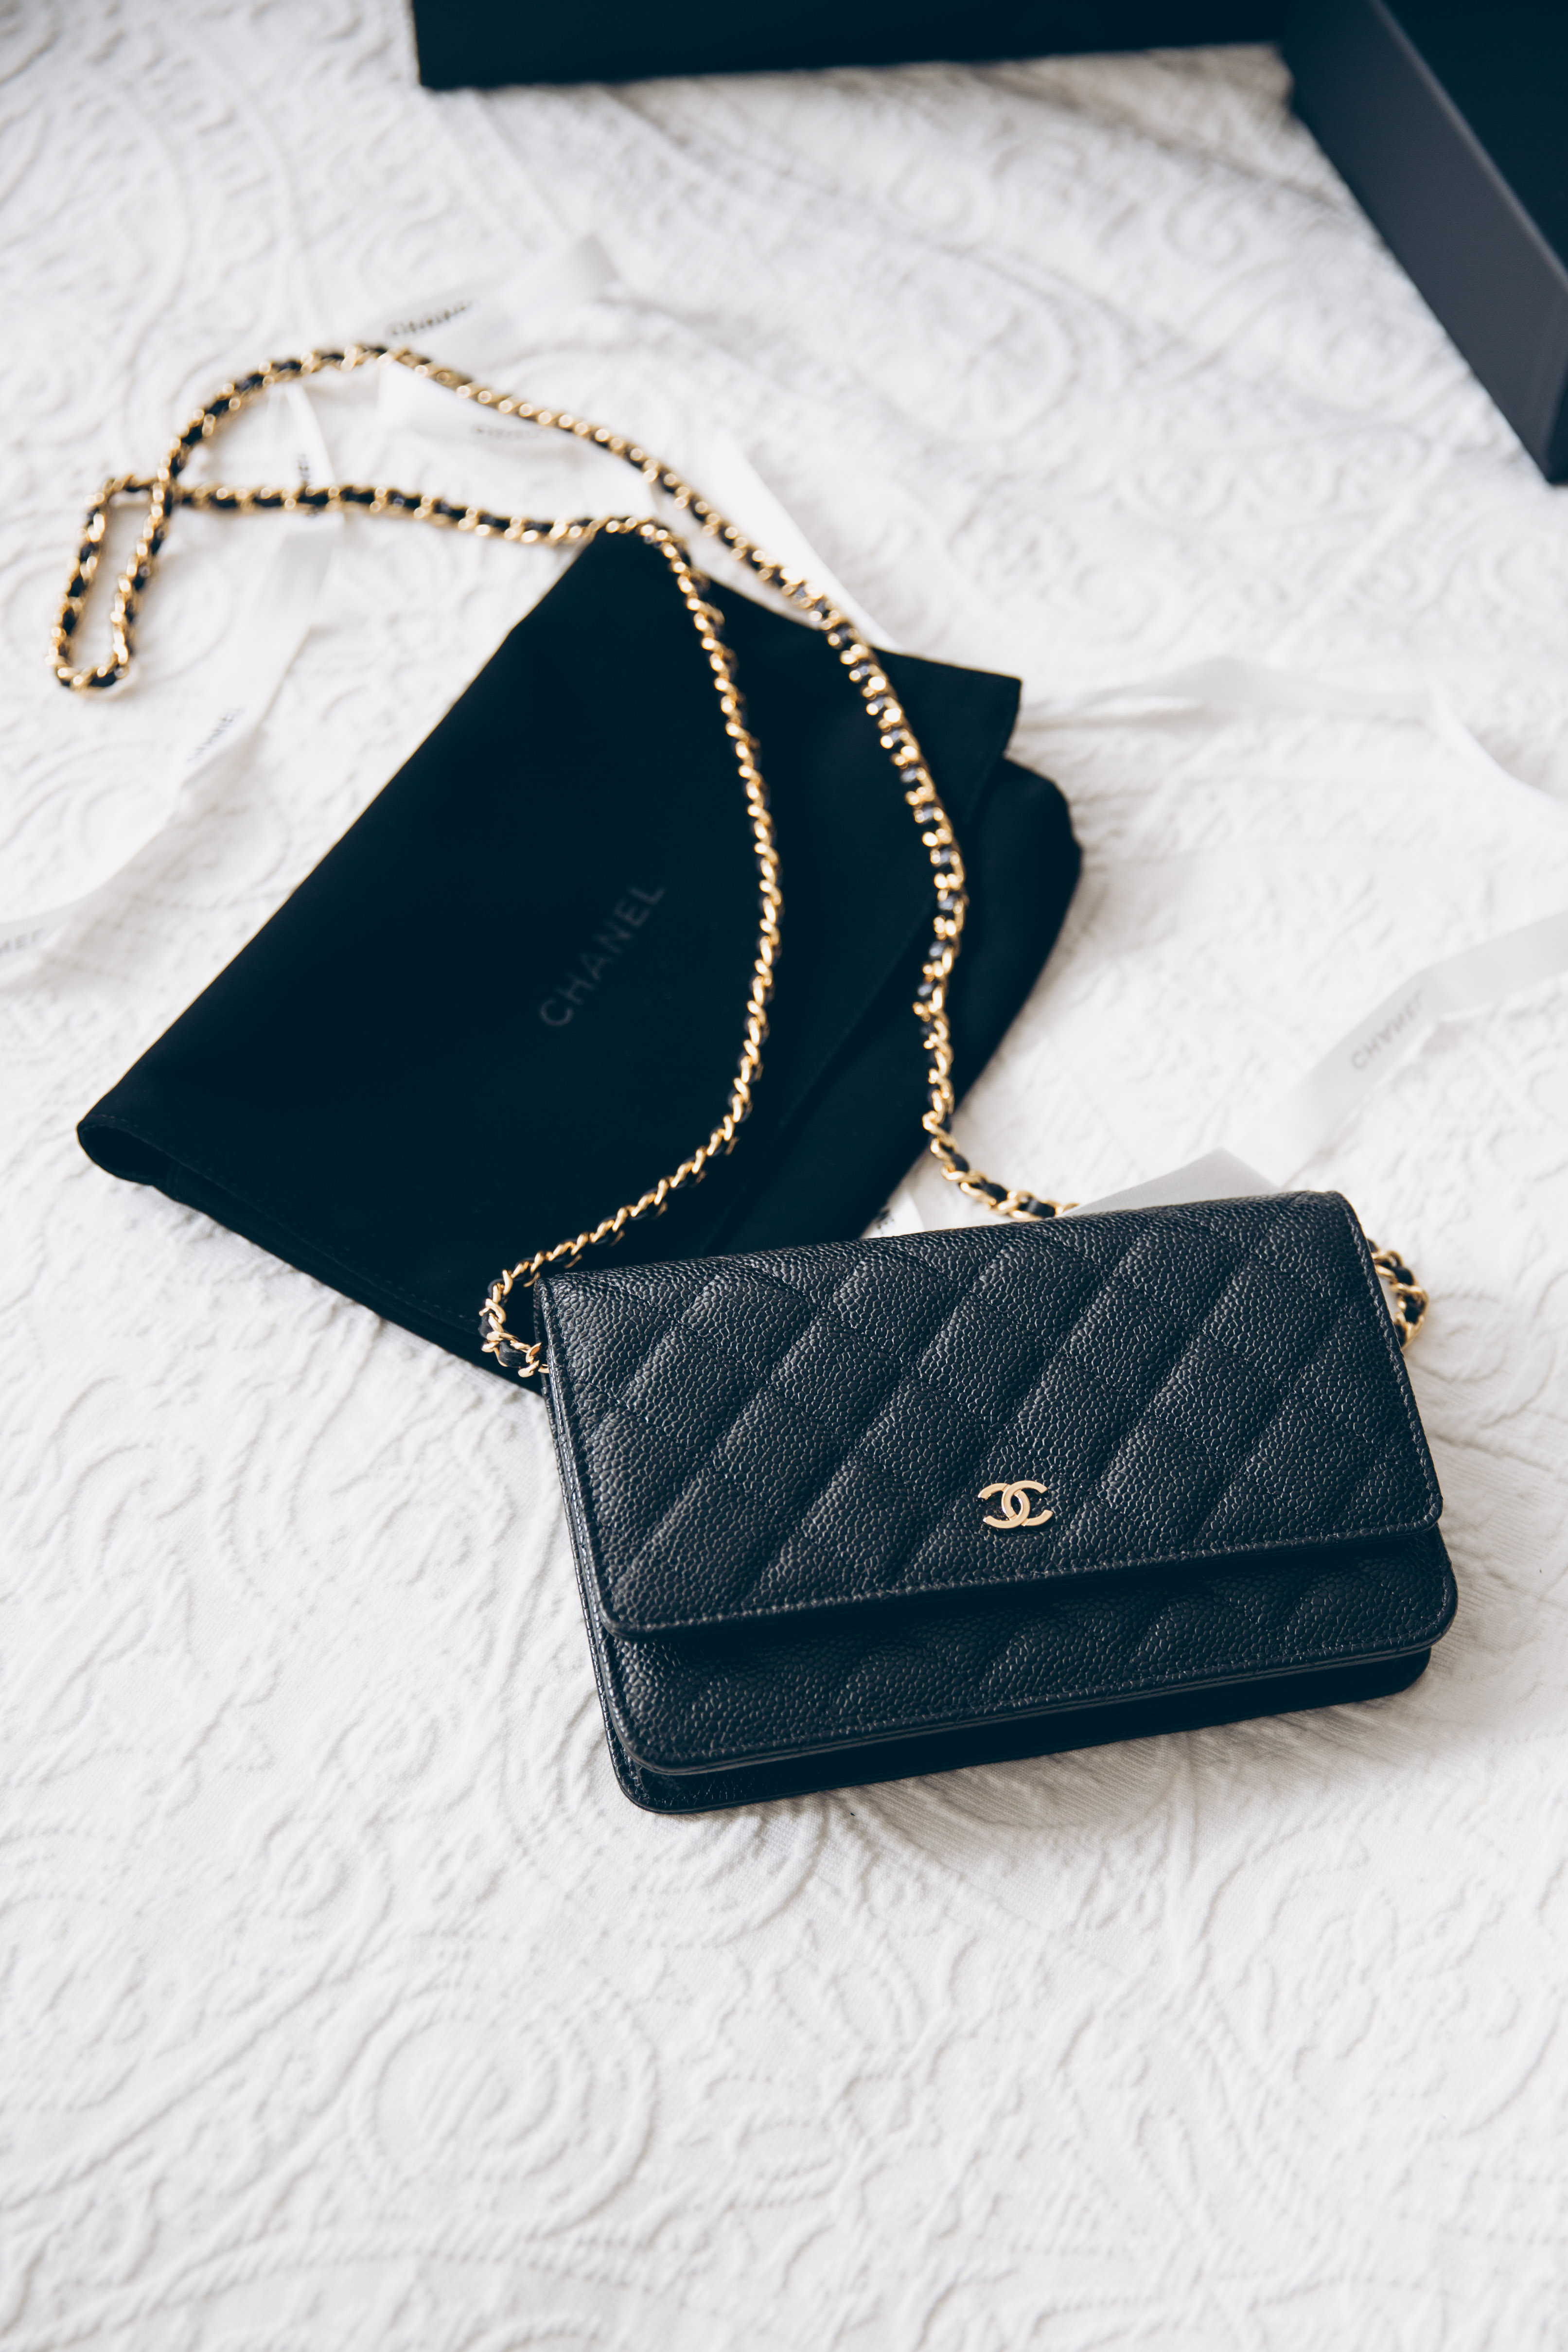 f6f0c8e66d79 Review: Chanel Wallet On Chain WOC | you rock my life